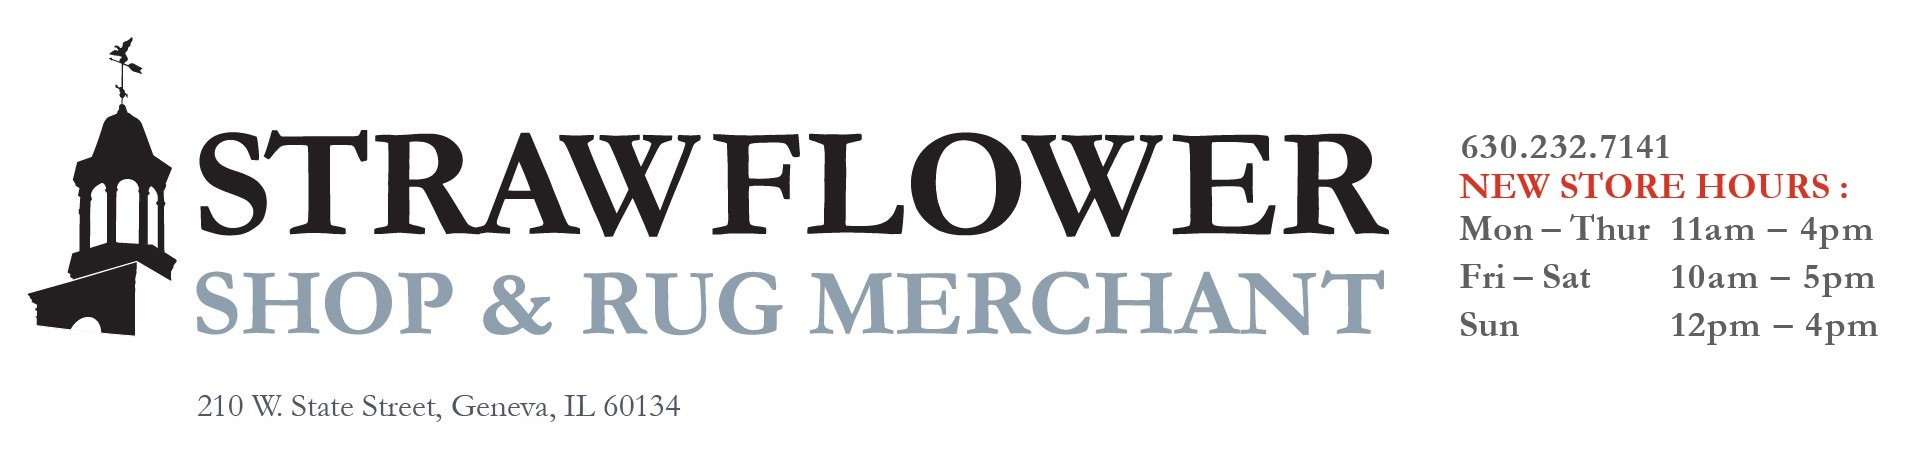 Strawflower Shop & Rug Merchant